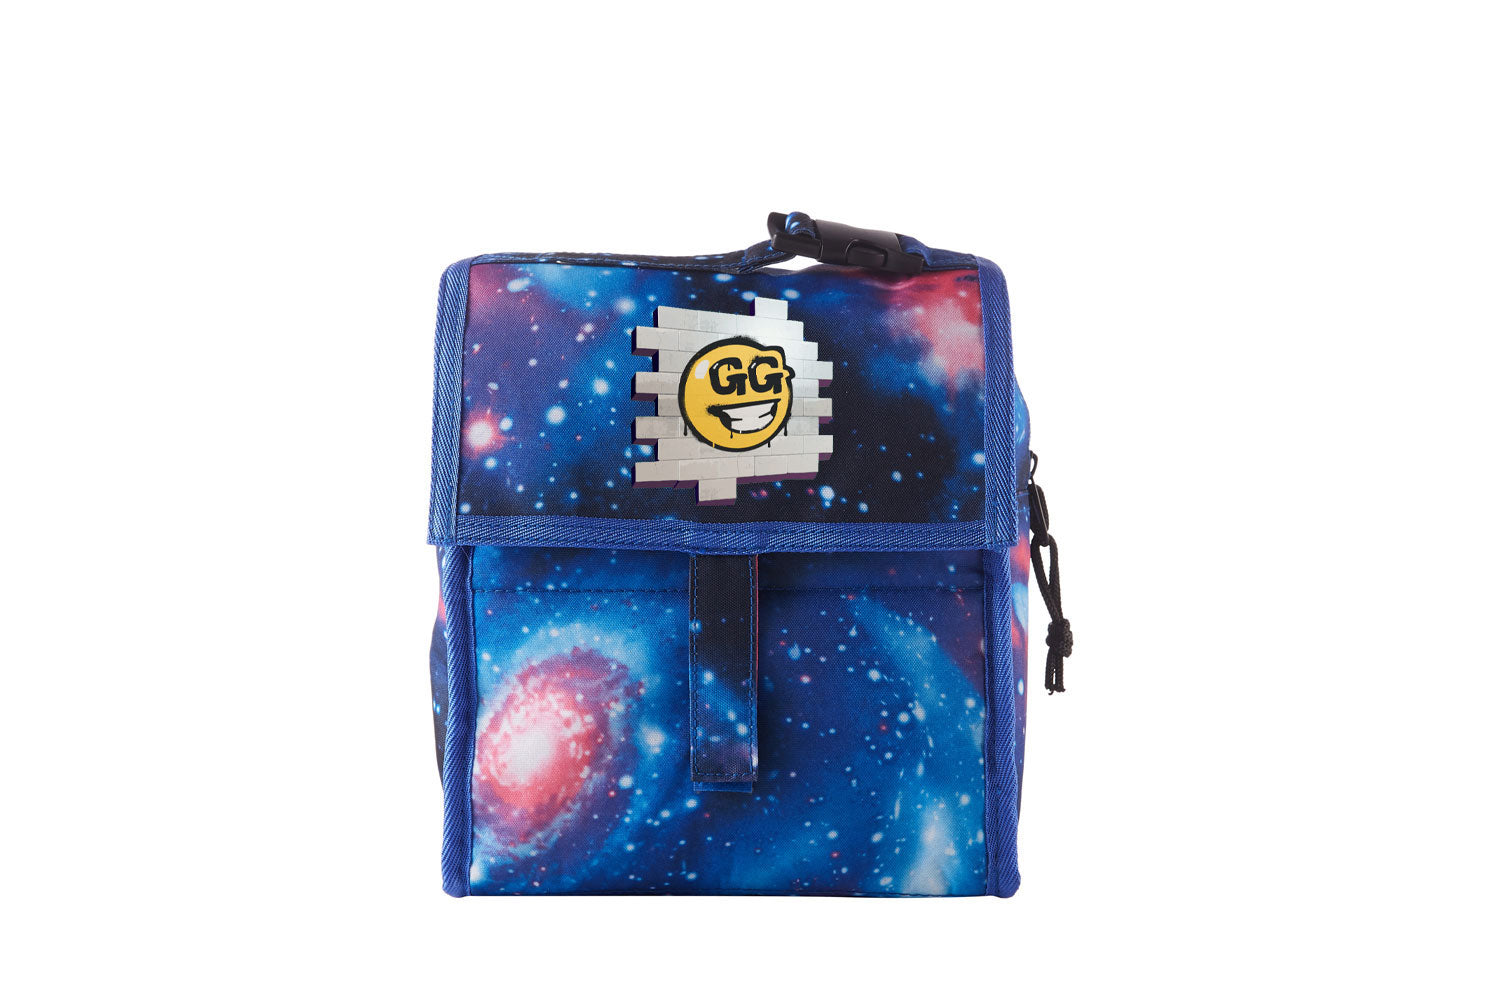 Battle Royale Sprays GG Smiley Starry Sky Freezable Lunch Bag with Zip Closure